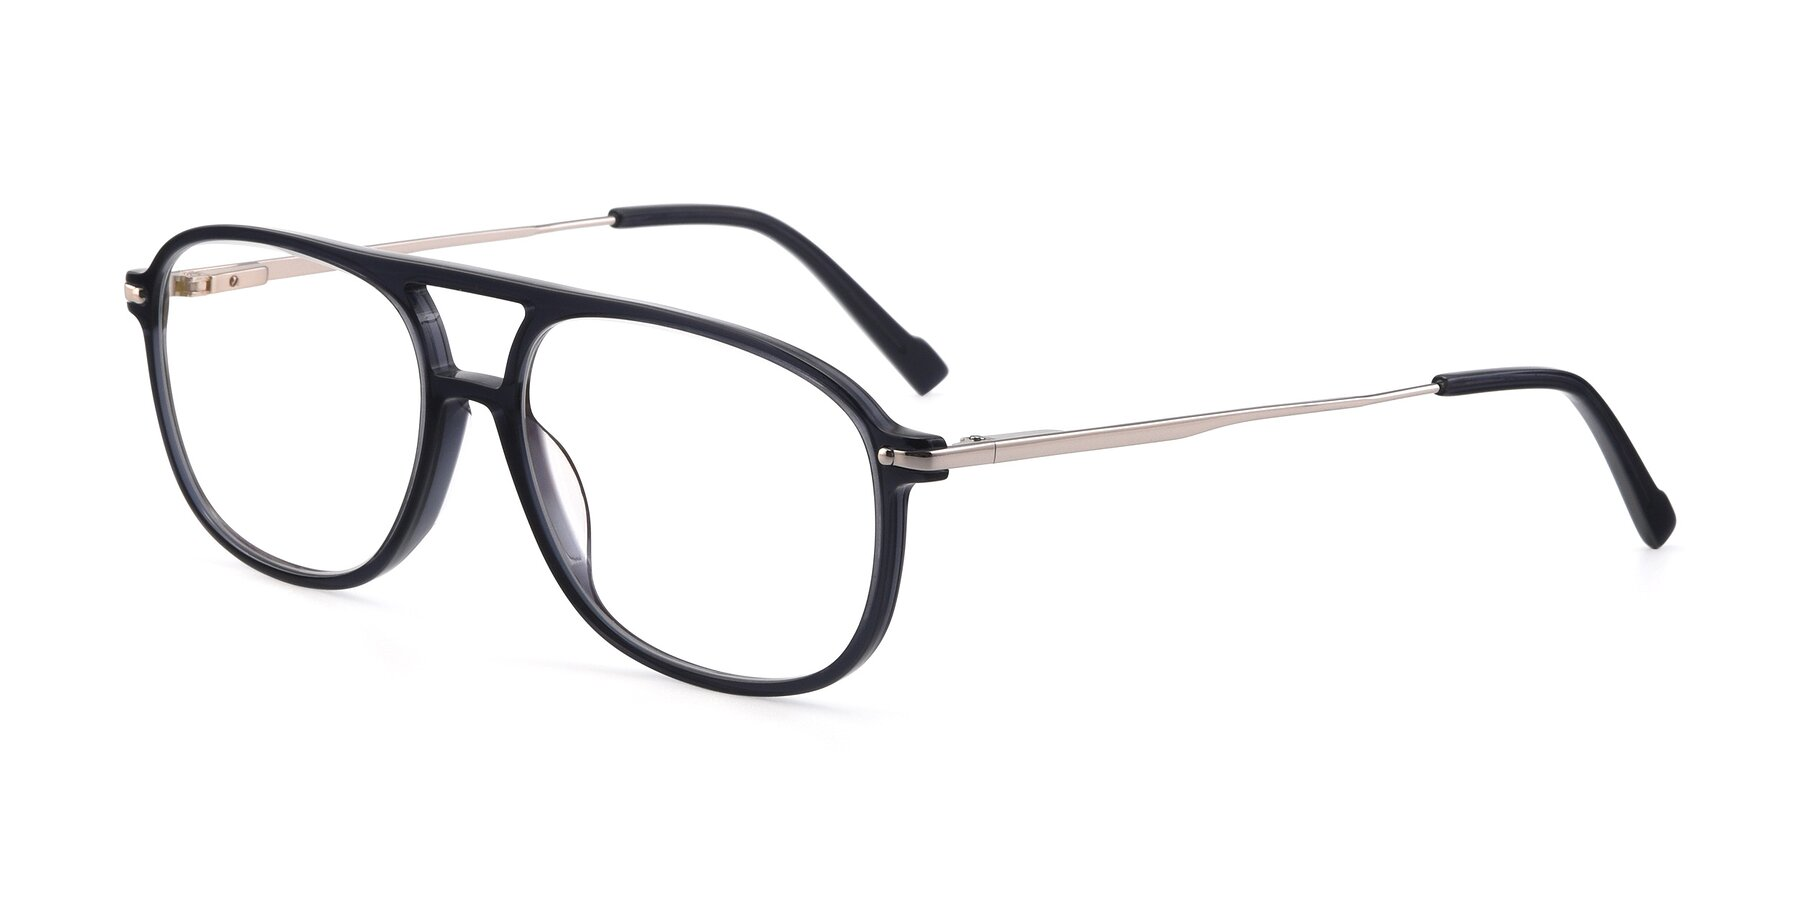 Angle of 17580 in Dark Bluish Gray with Clear Blue Light Blocking Lenses